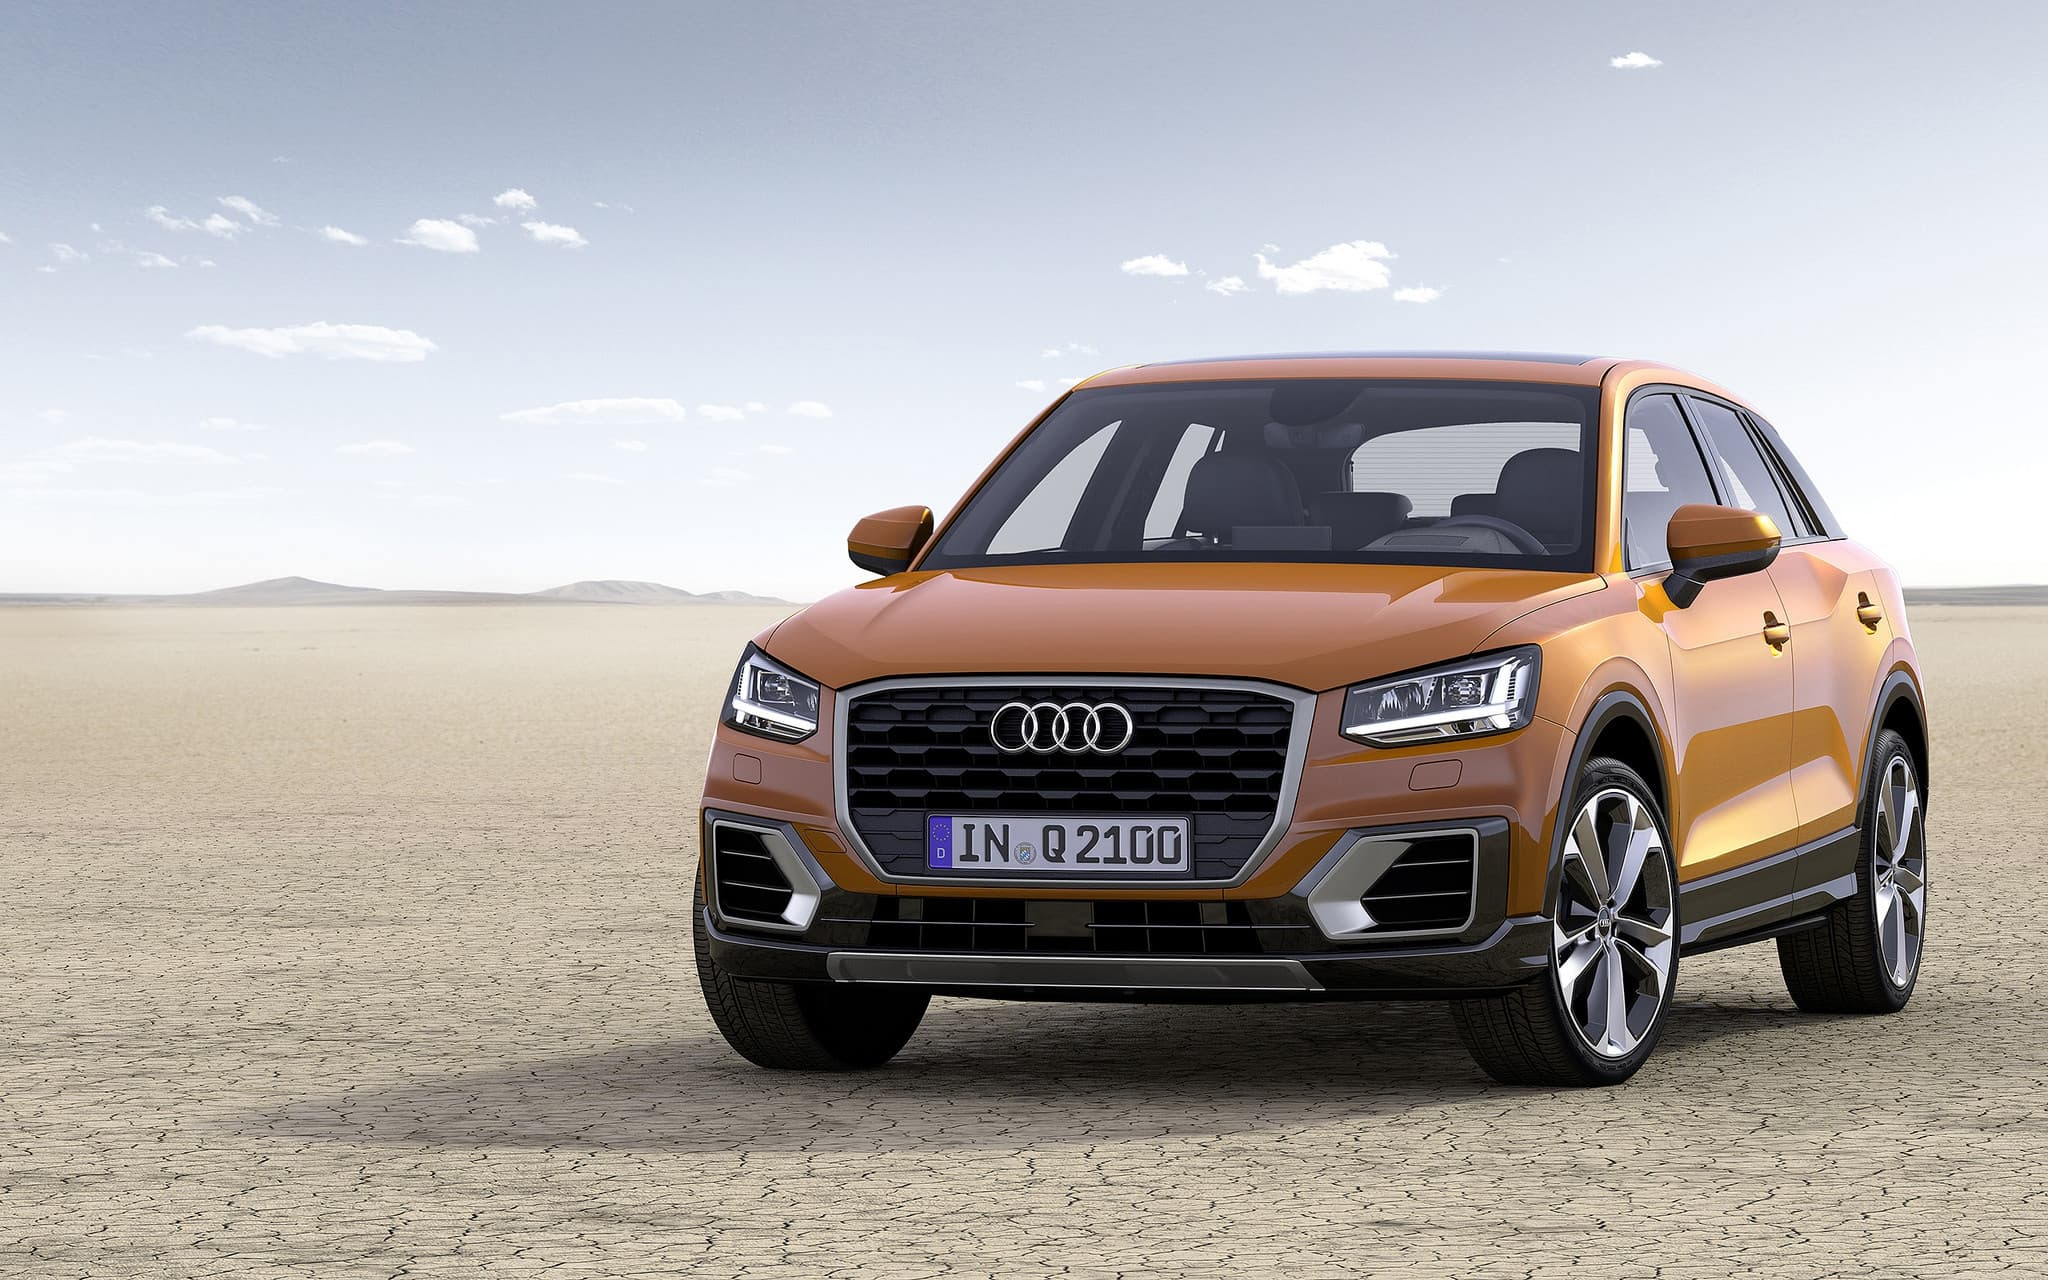 2016 Audi Q2 Tfsi Wallpapers Hd